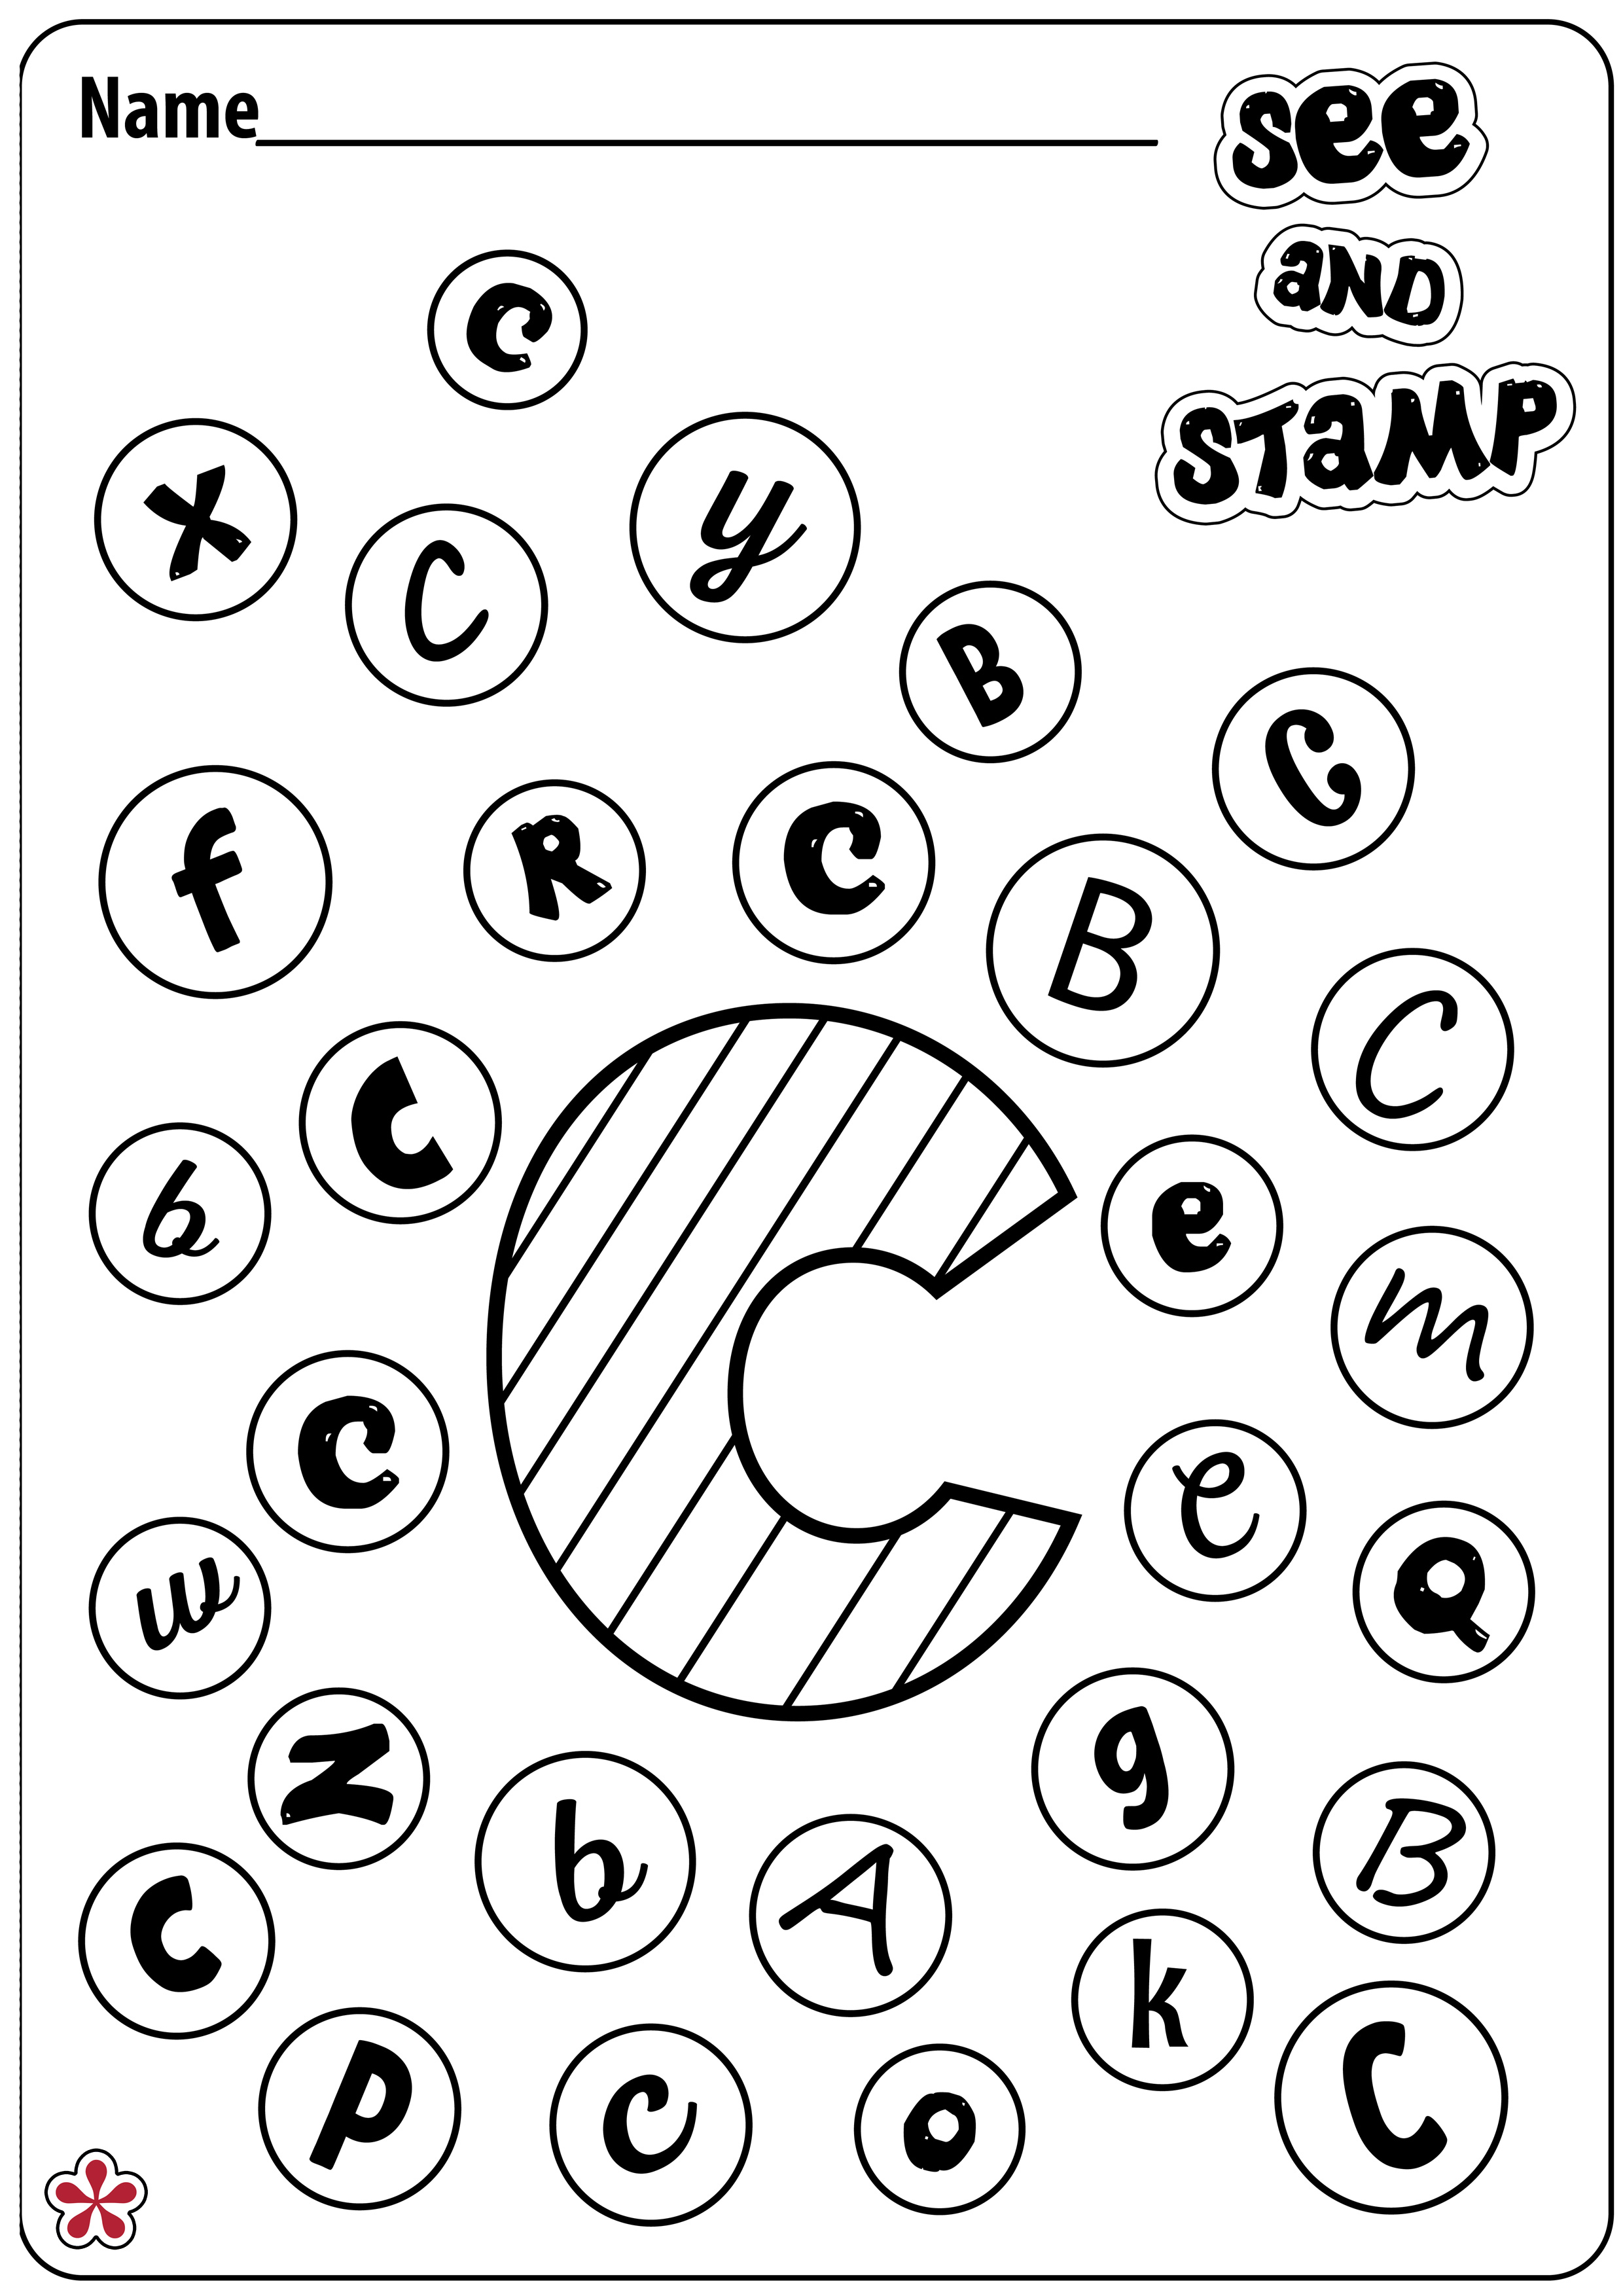 coloring preschool letter c worksheets 28 letter c worksheets for young learners kittybabylovecom letter preschool c worksheets coloring